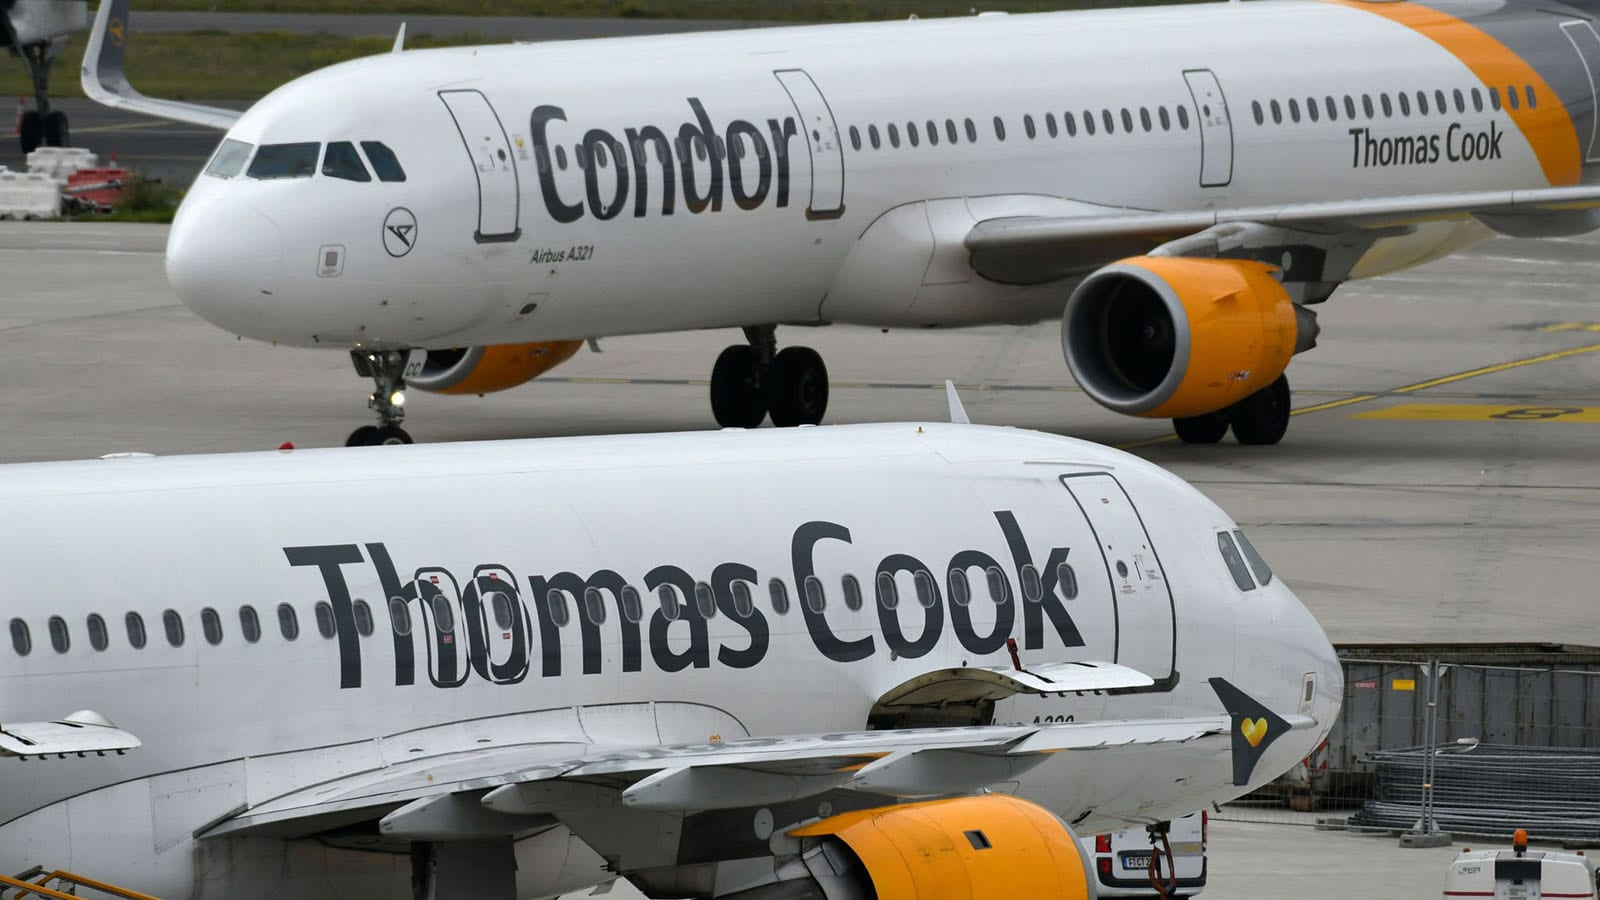 Thomas Cook, one of the world's largest tour operators, was put into administration earlier this month as it failed to secure a rescue deal from the British Government.